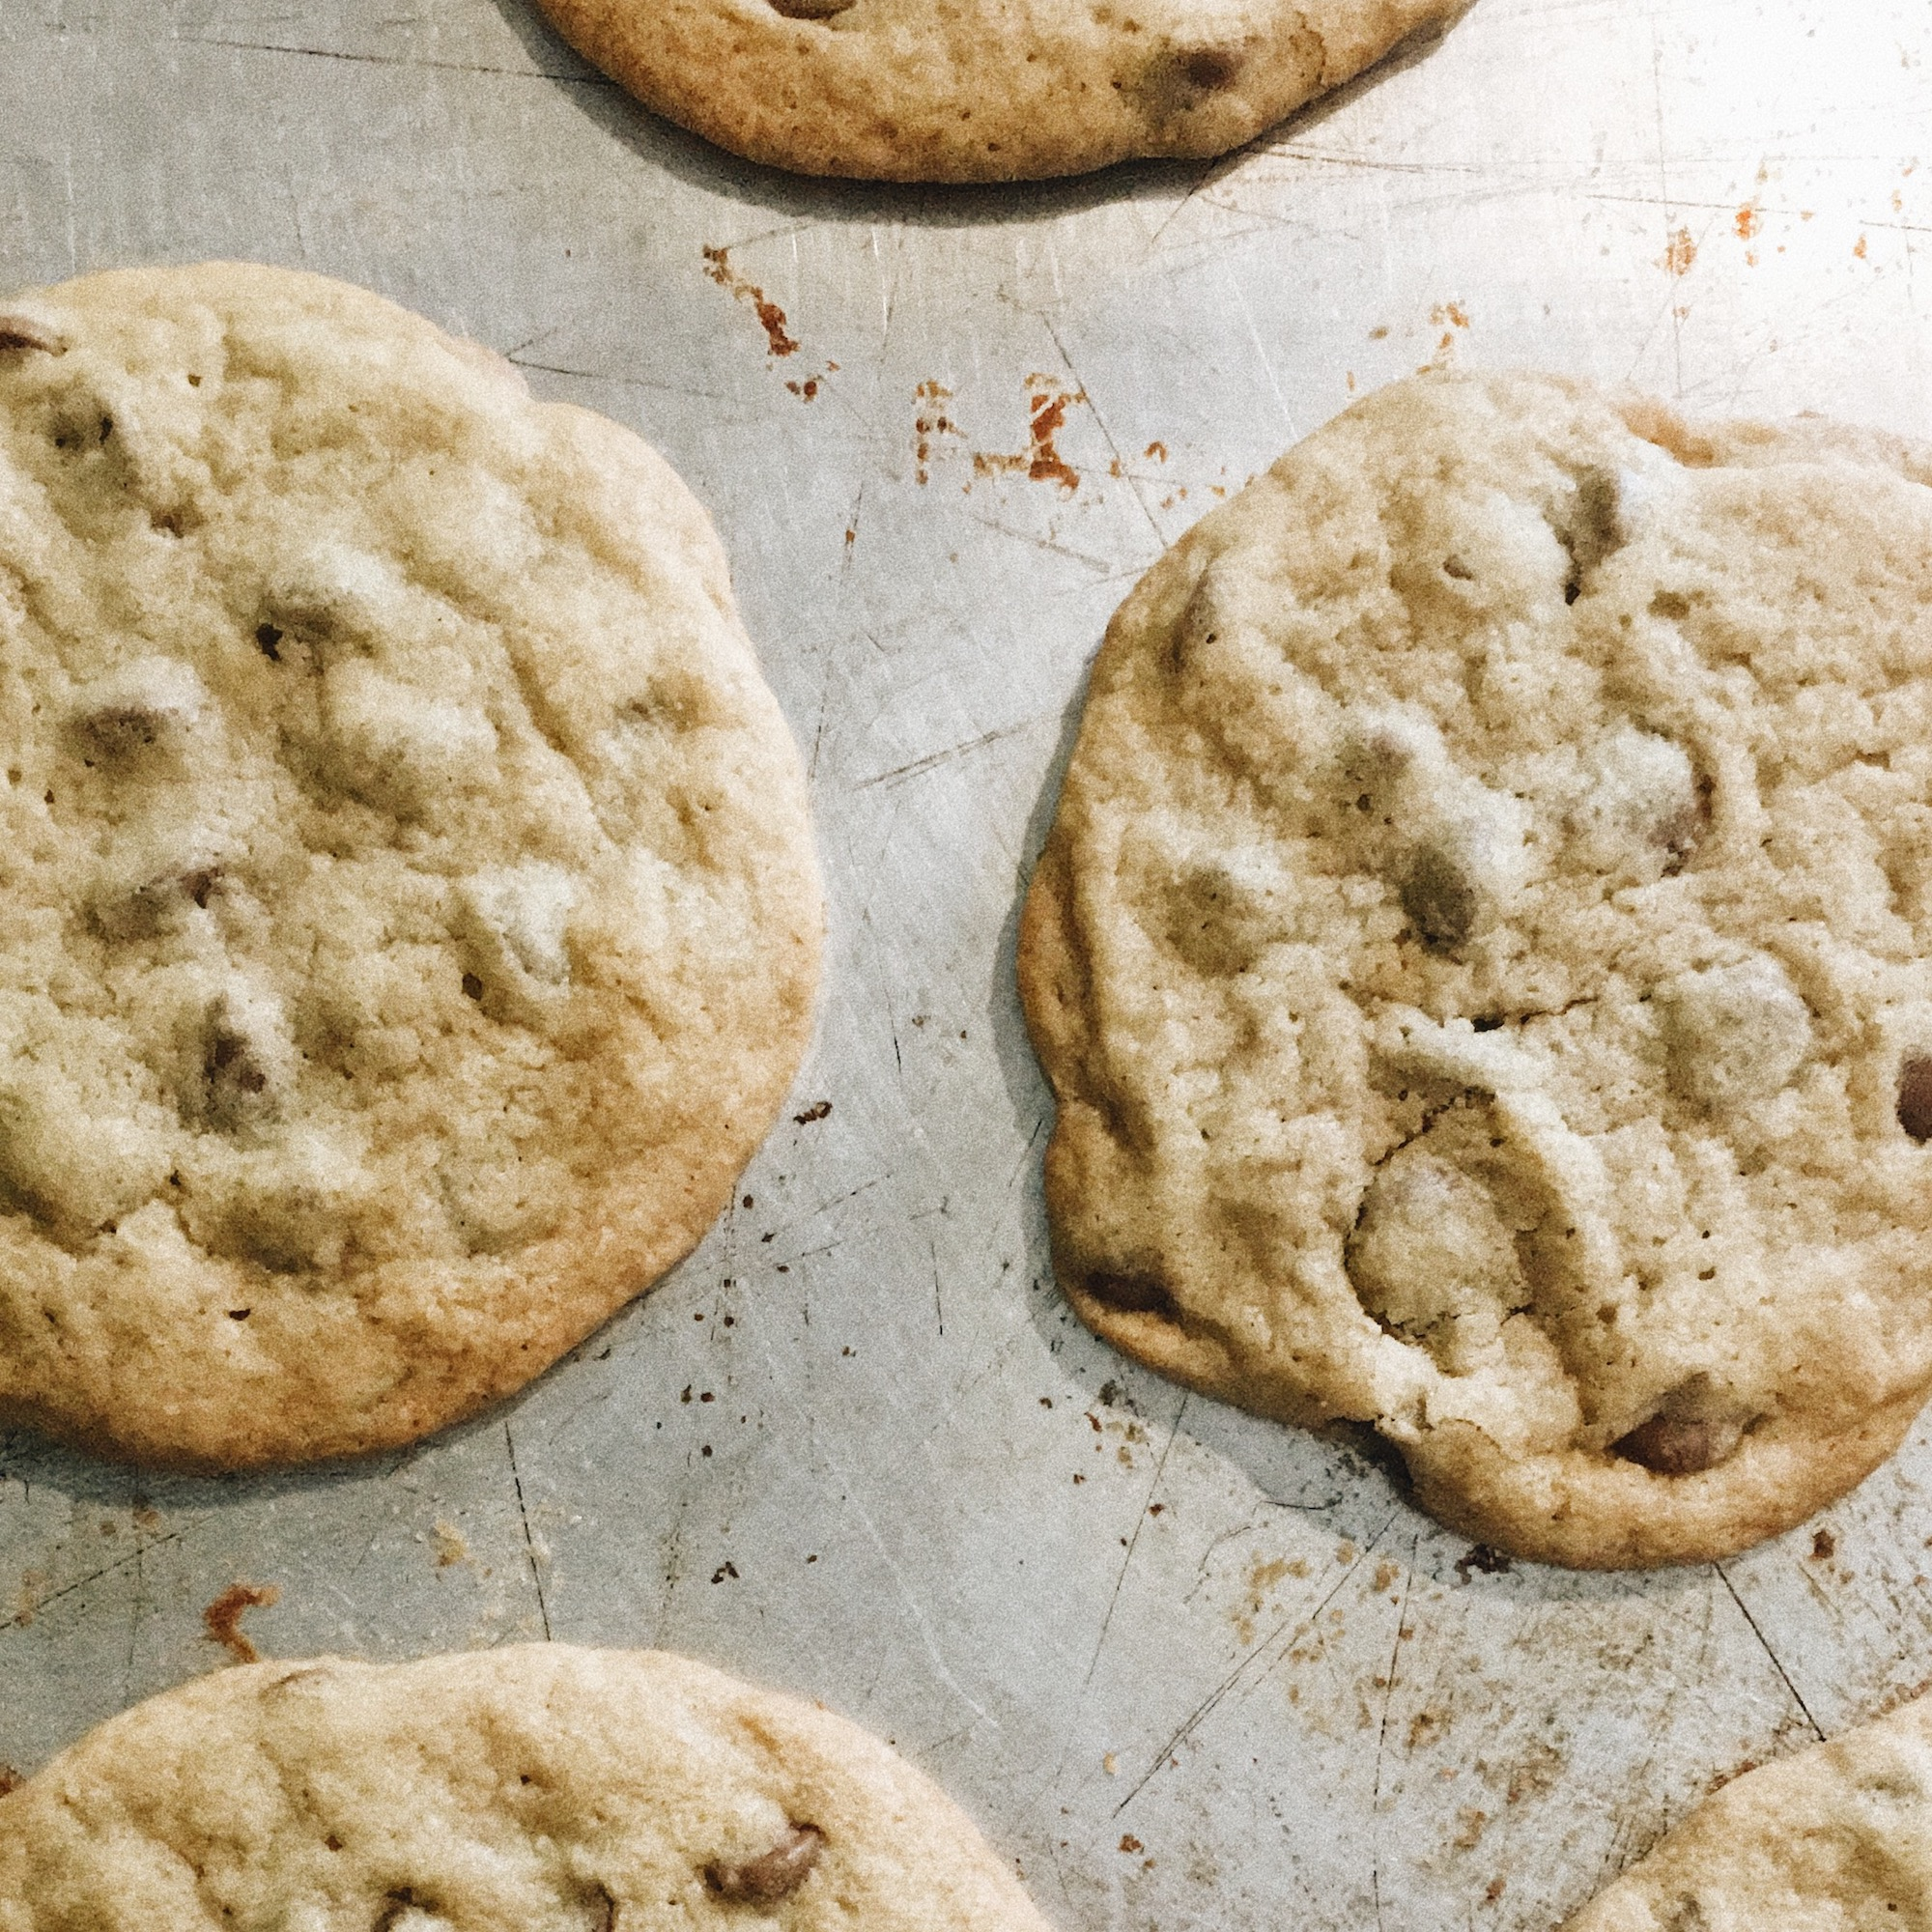 Cashmere + Plaid Blog | TGIF July 20 | Homemade chocolate chip cookies on a Tuesday night